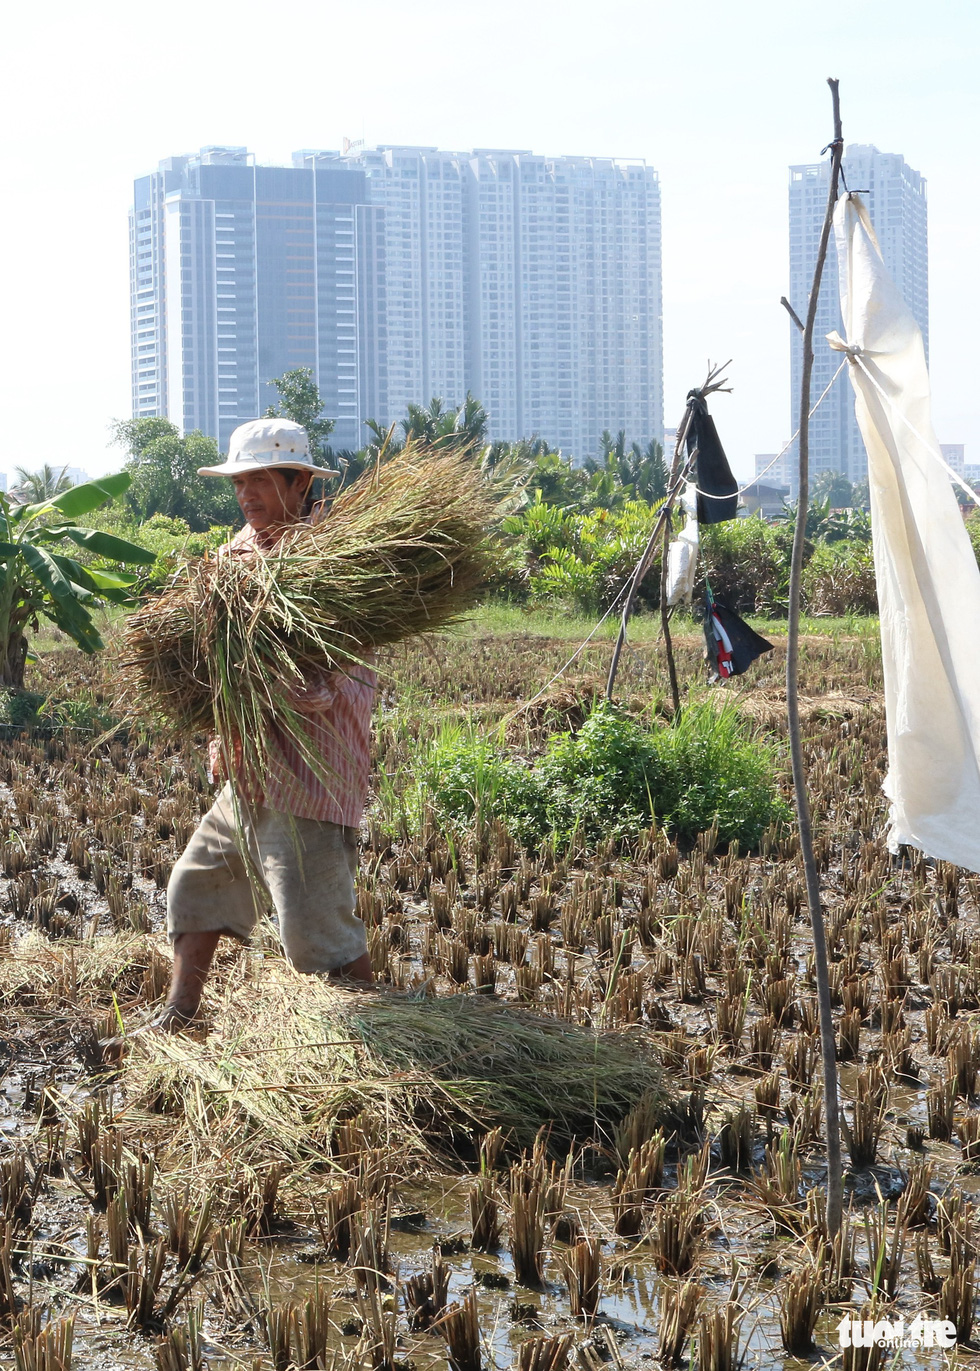 A farmer carries a sheaf of rice in his field in Ho Chi Minh City, Vietnam. Photo: Tuoi Tre